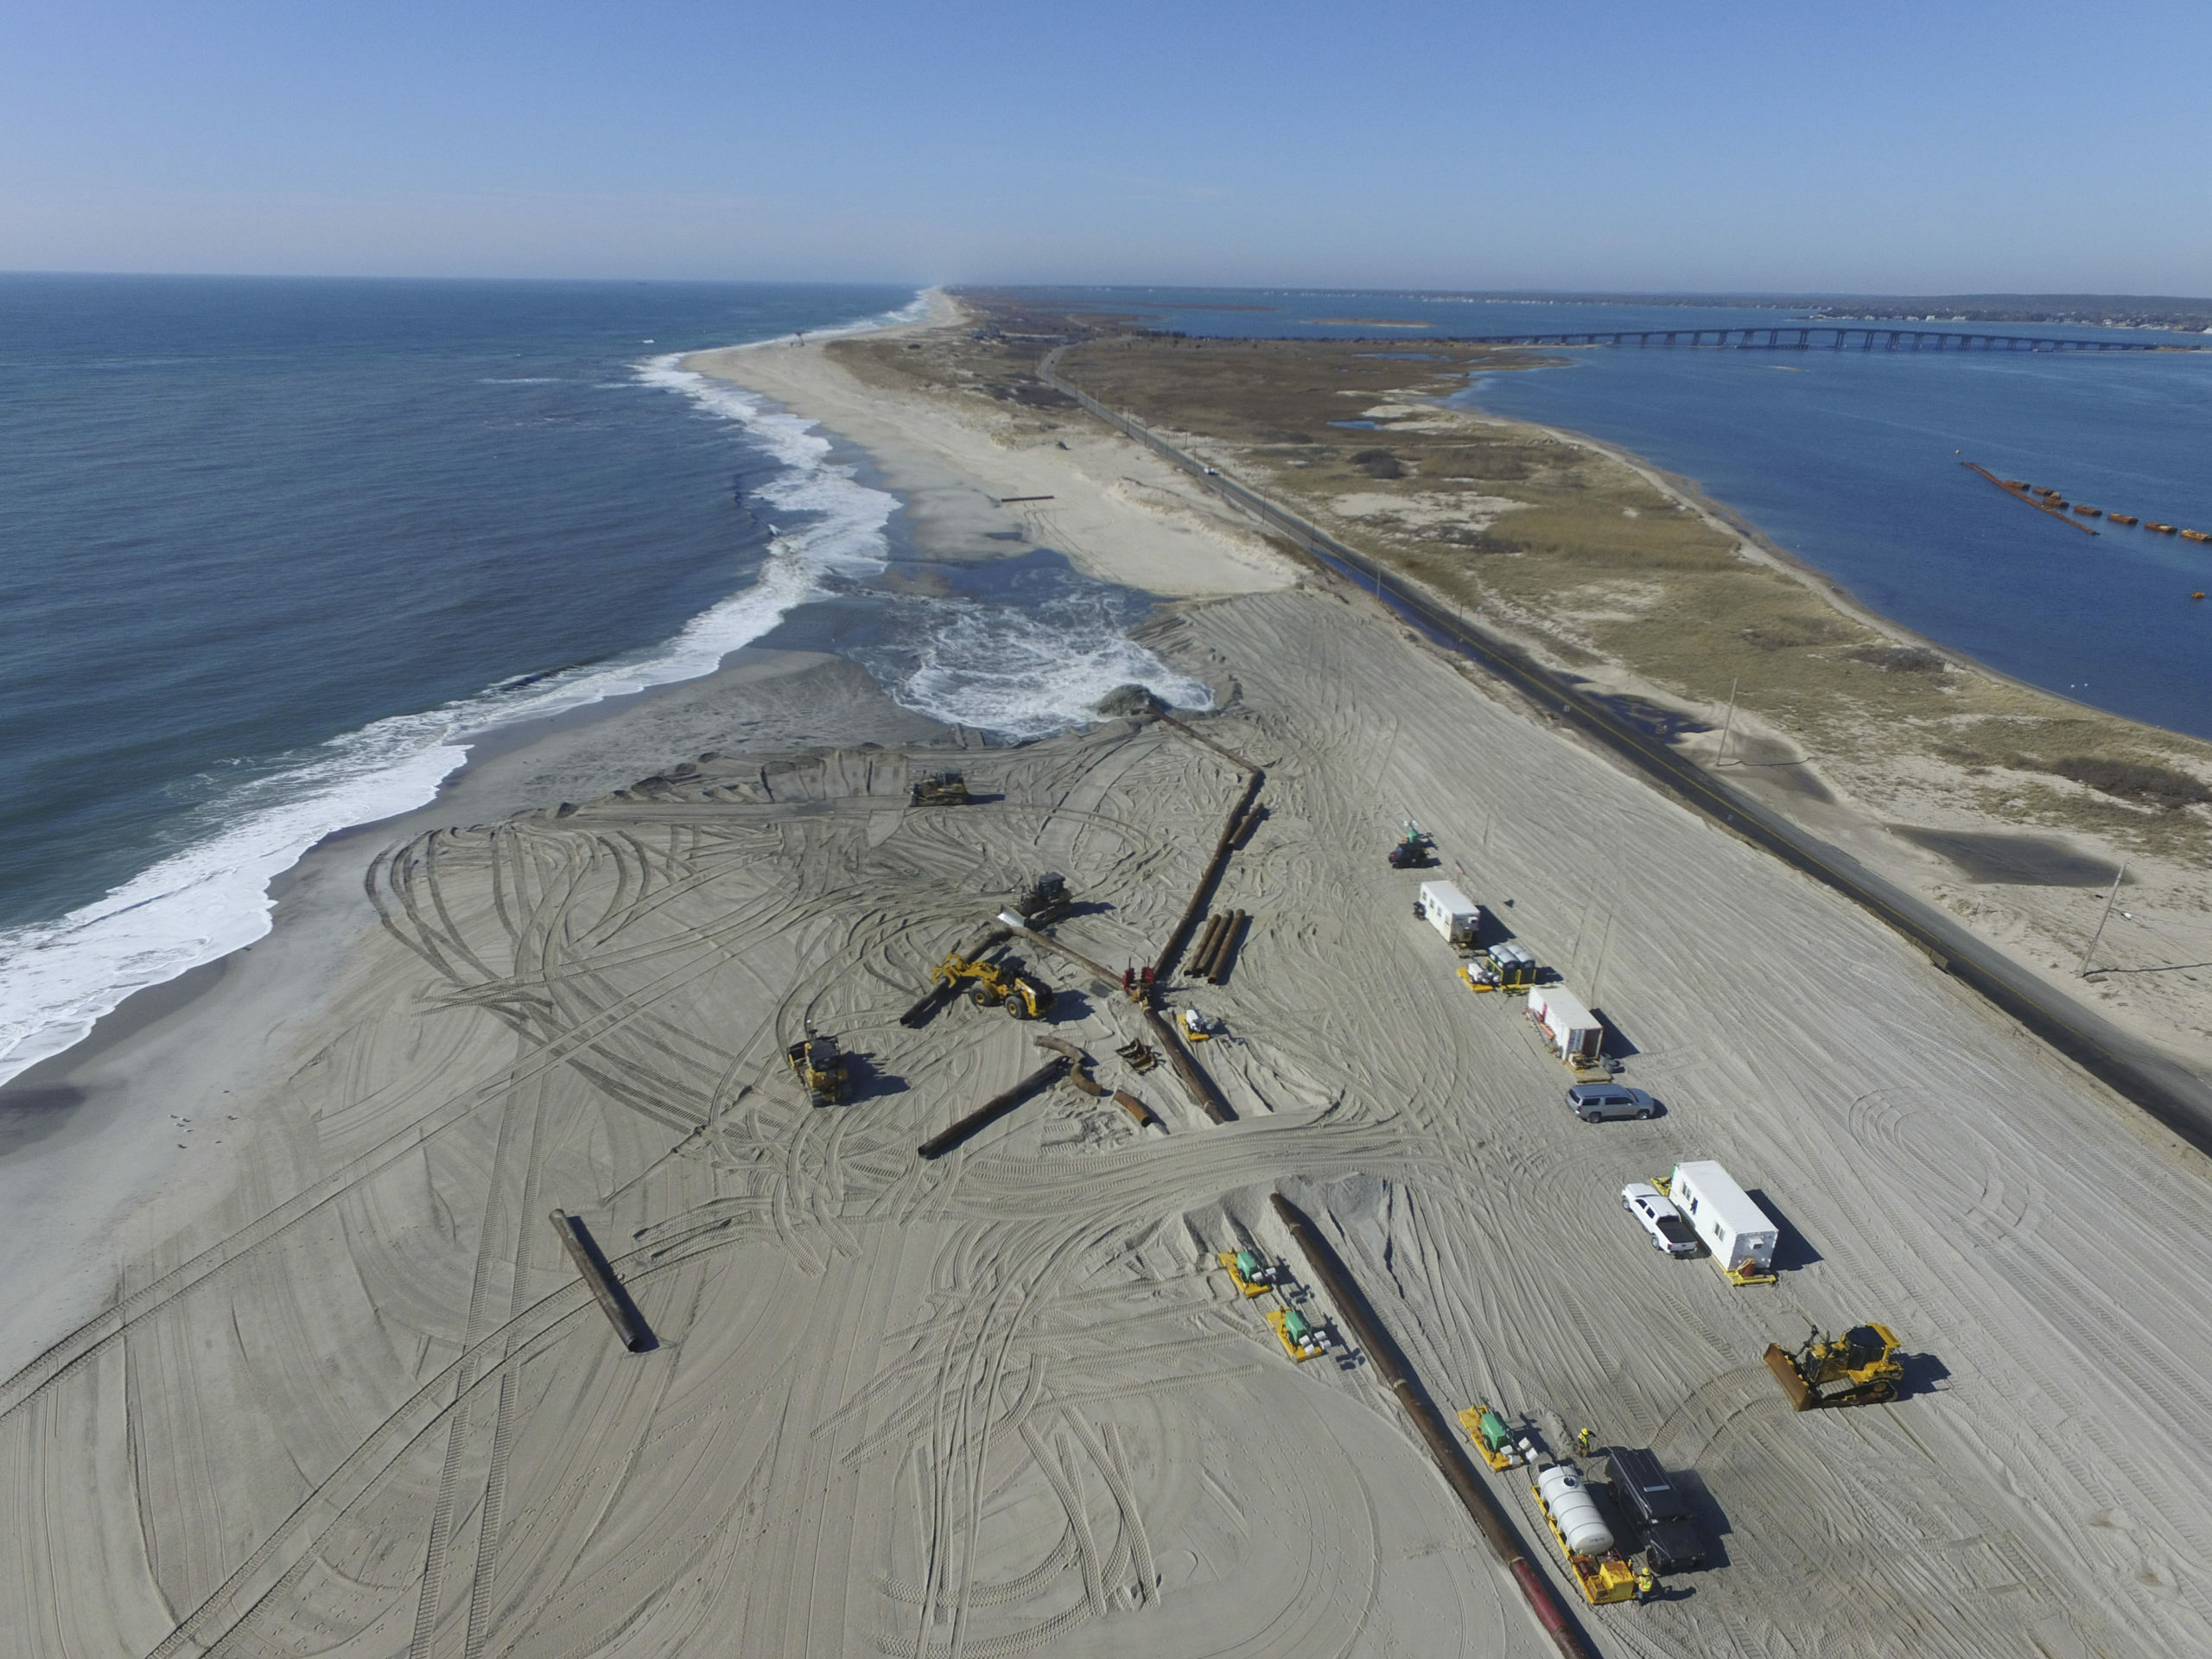 Dredging crews rebuilding the beaches west of Shinnecock Inlet in February 2020. Federal funding for massive new nourishment projects in Hampton Bays, East Quogue and Montauk was approved by Congress this month.